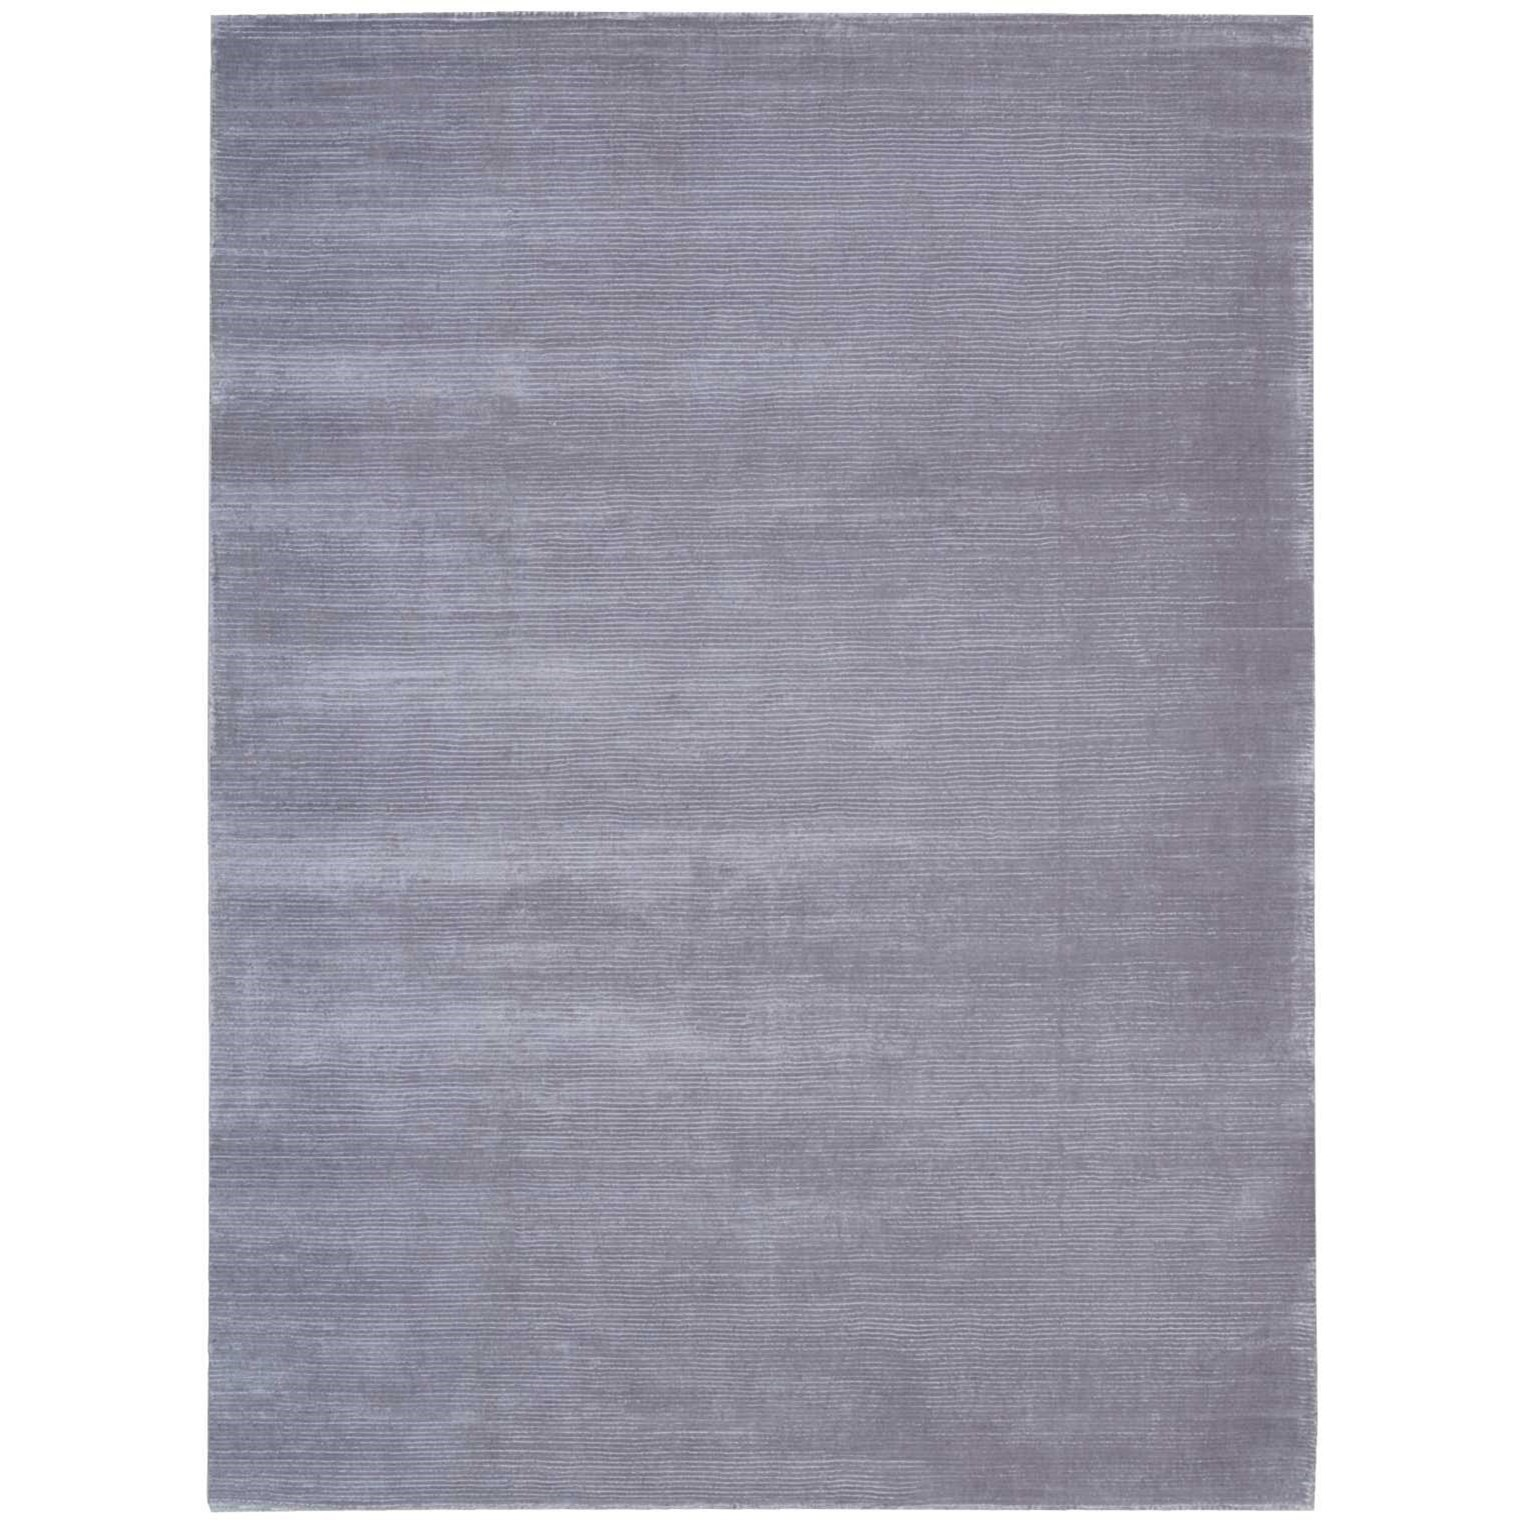 "Lunar 5'6"" x 7'5"" Rug by Calvin Klein Home by Nourison at Home Collections Furniture"